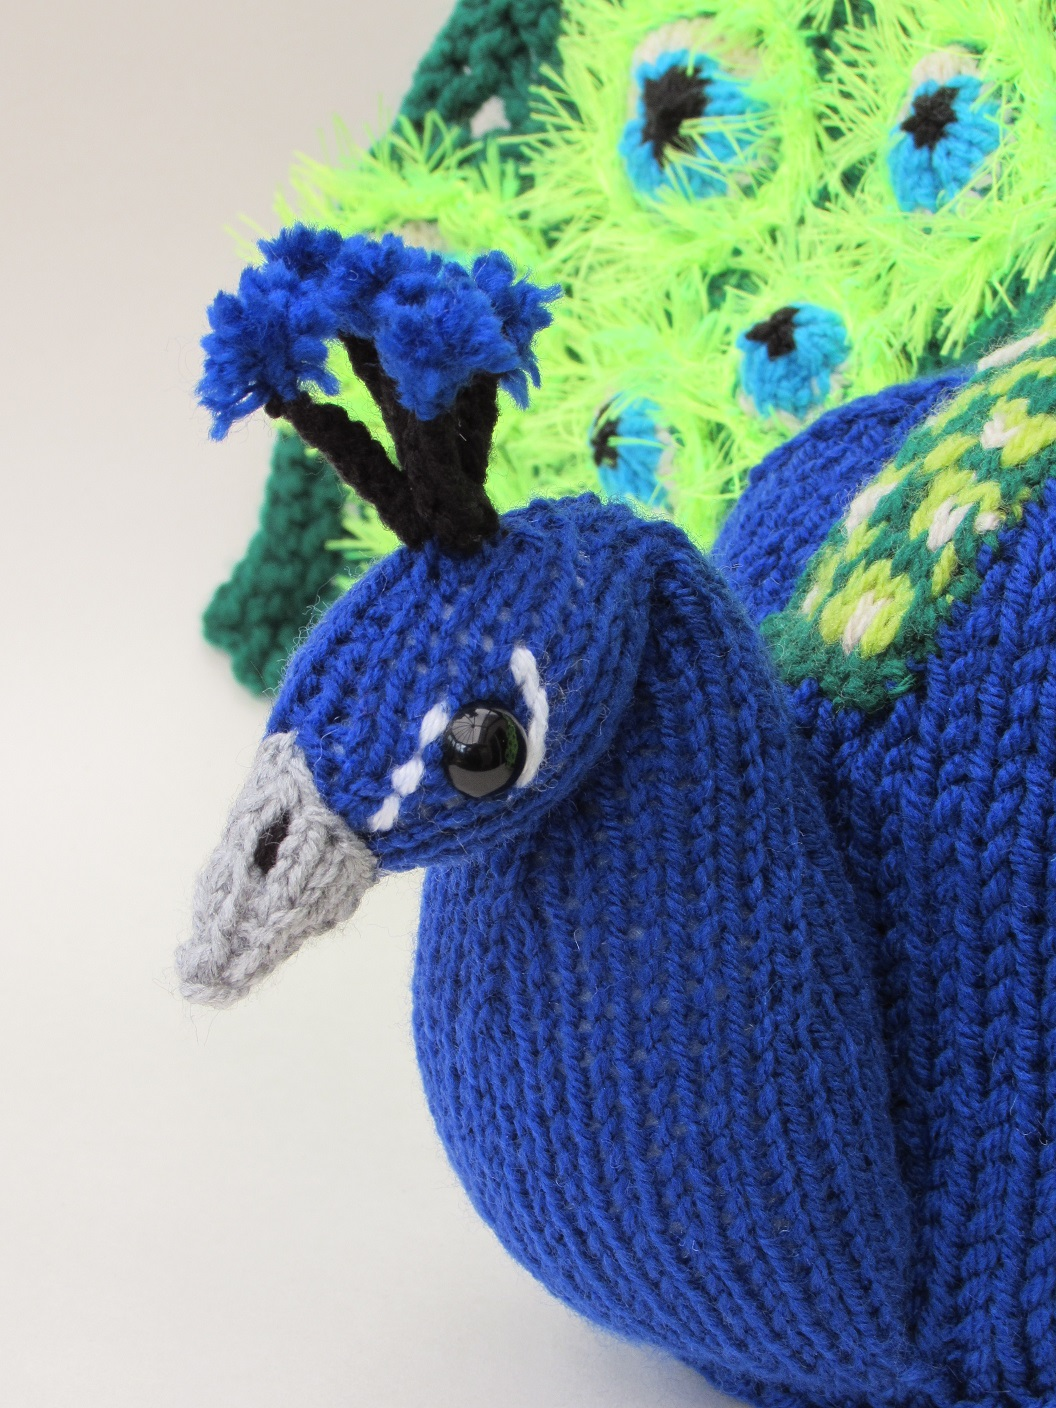 Peacock knitting pattern